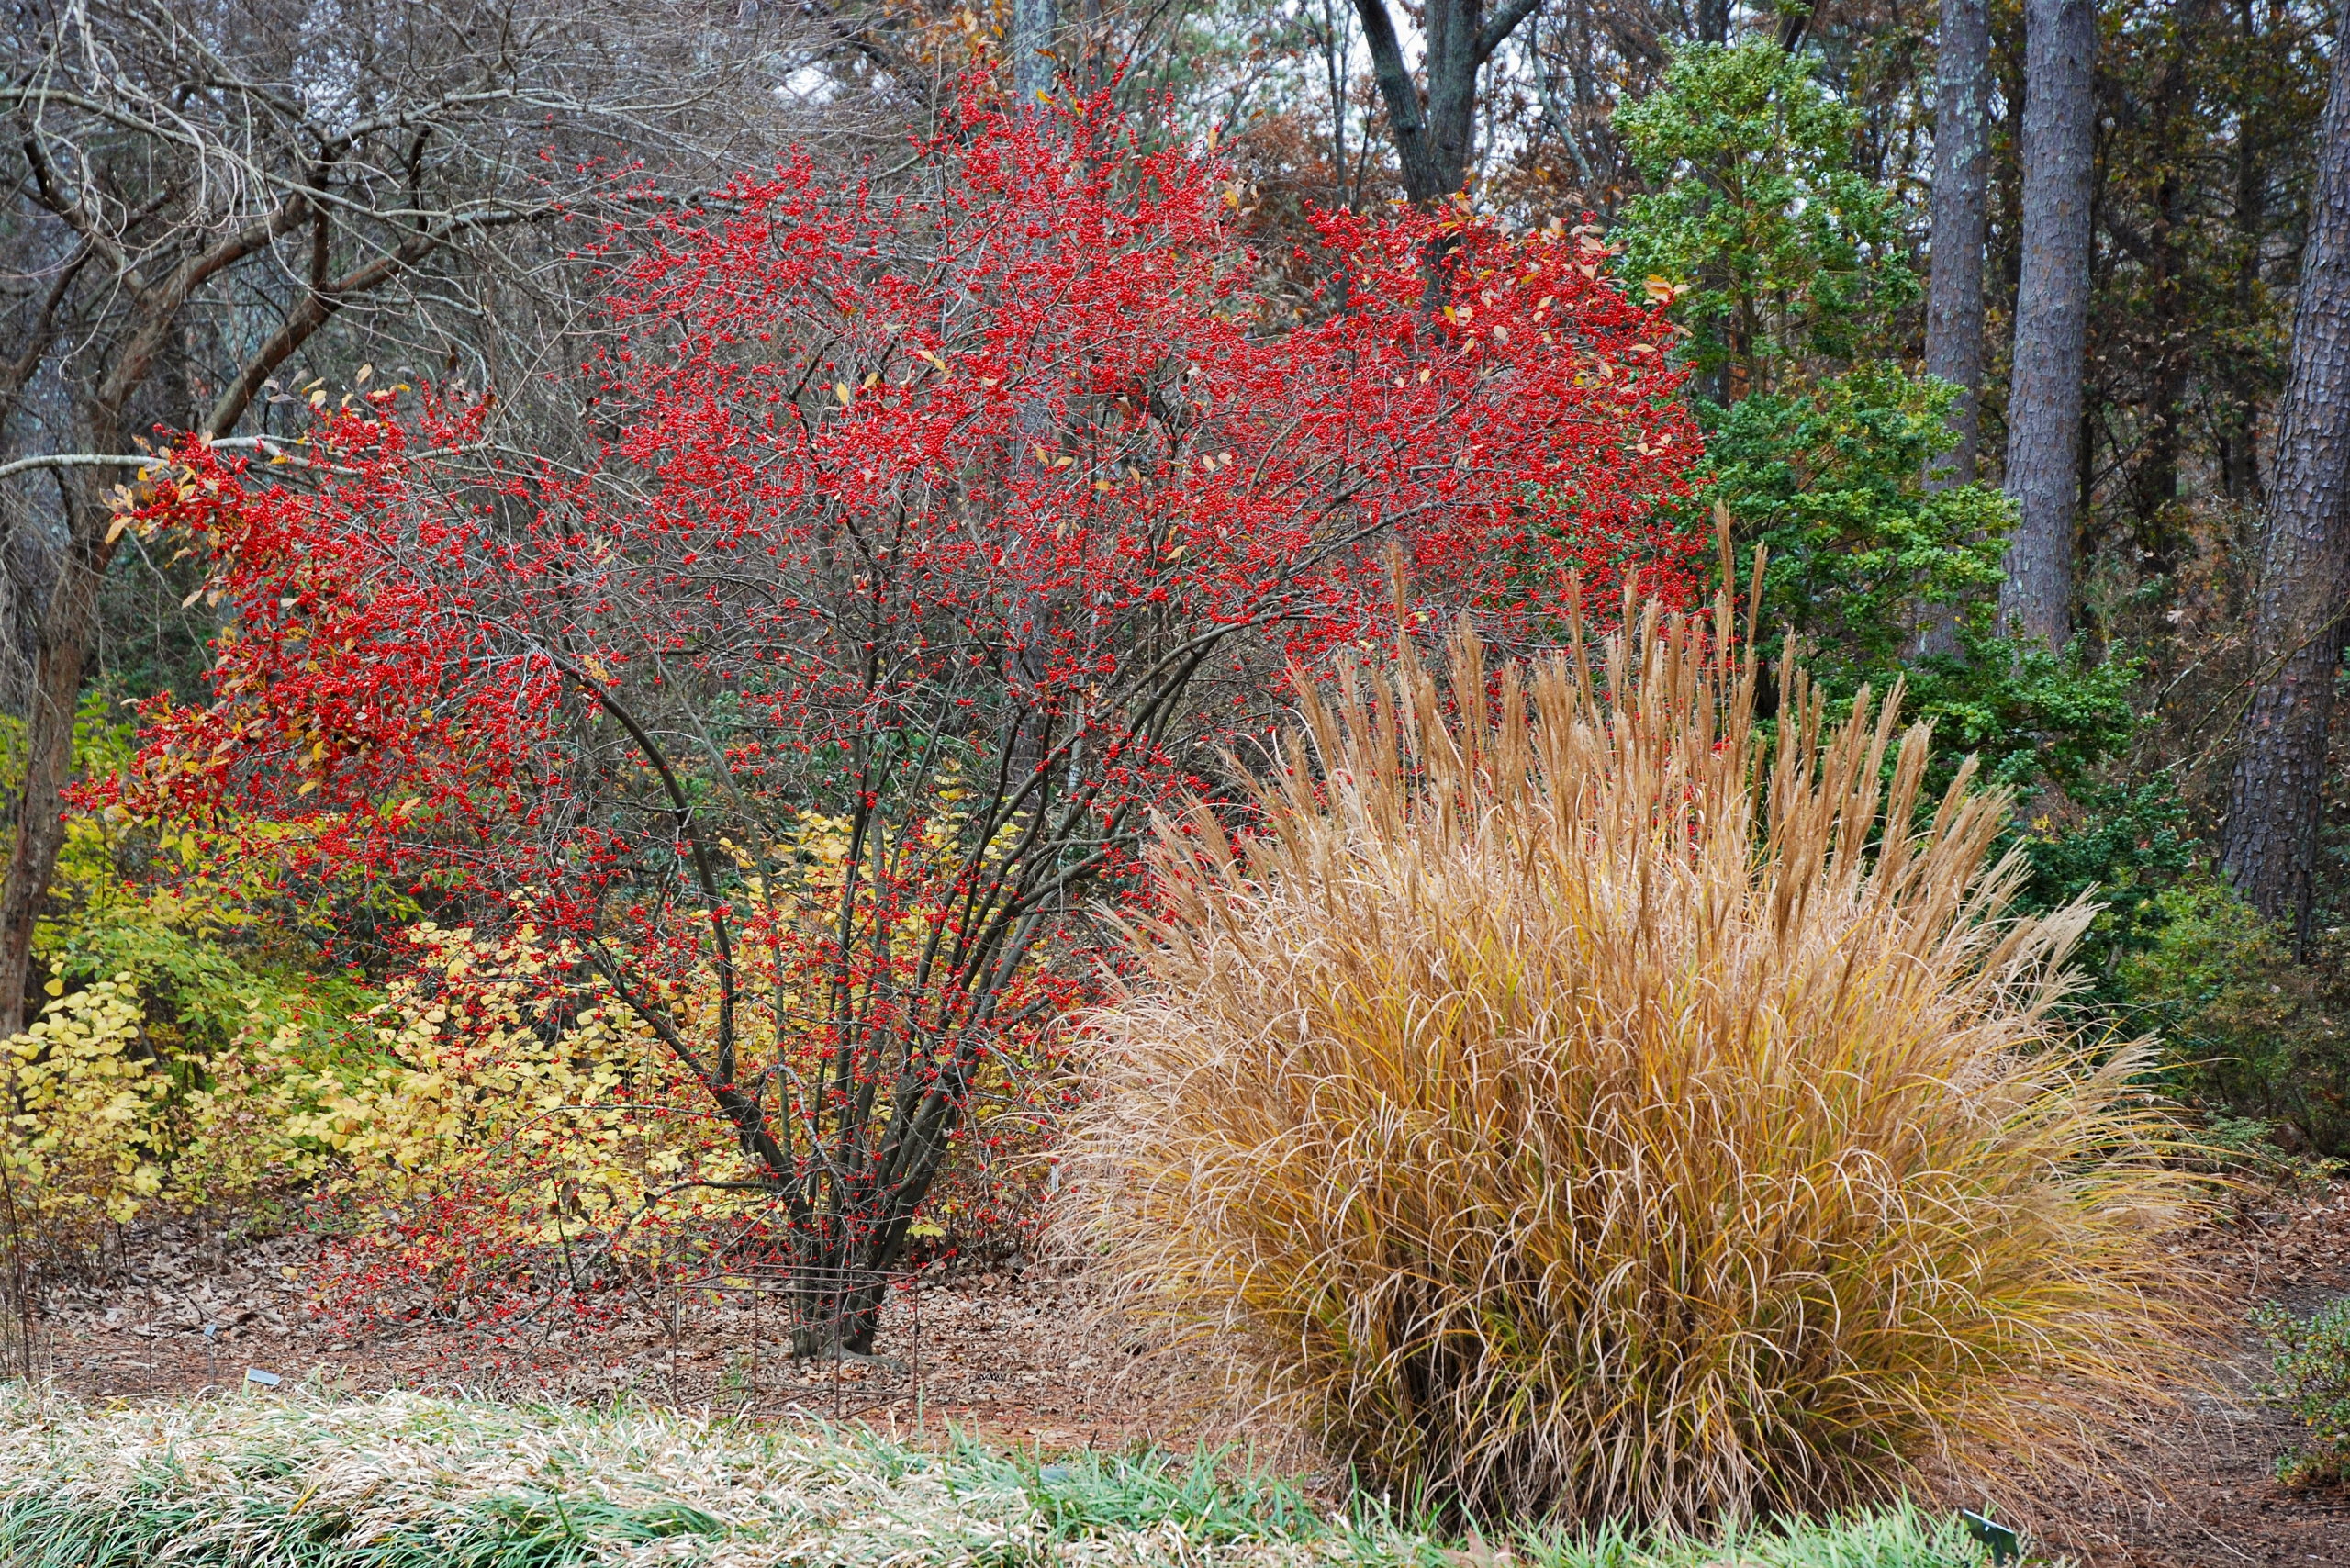 Ornamental Grass and tree with holly berries